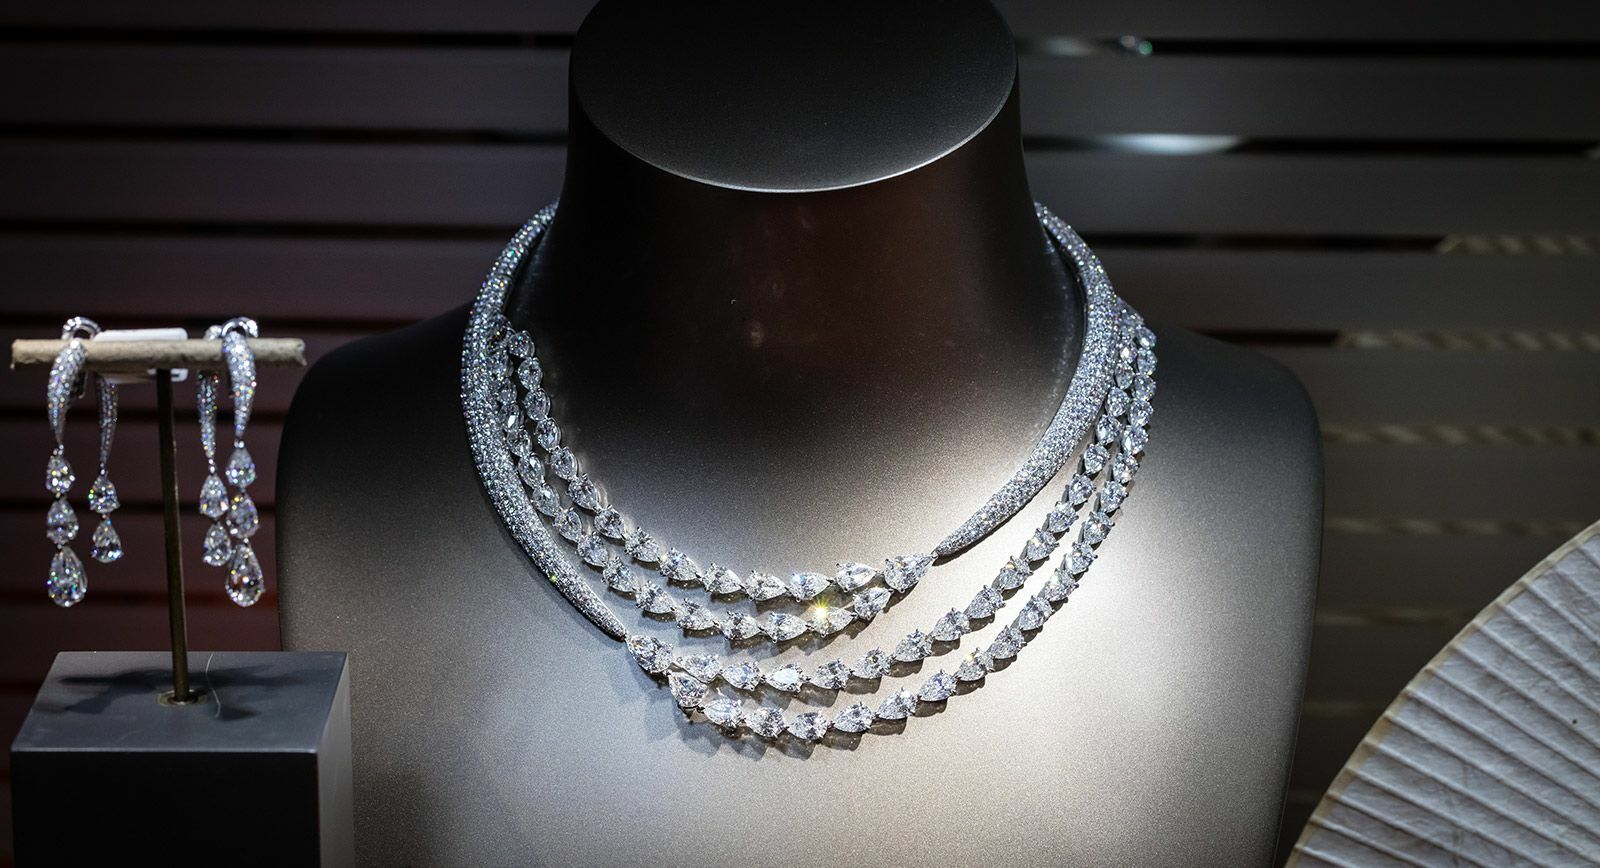 Adler necklace with diamonds